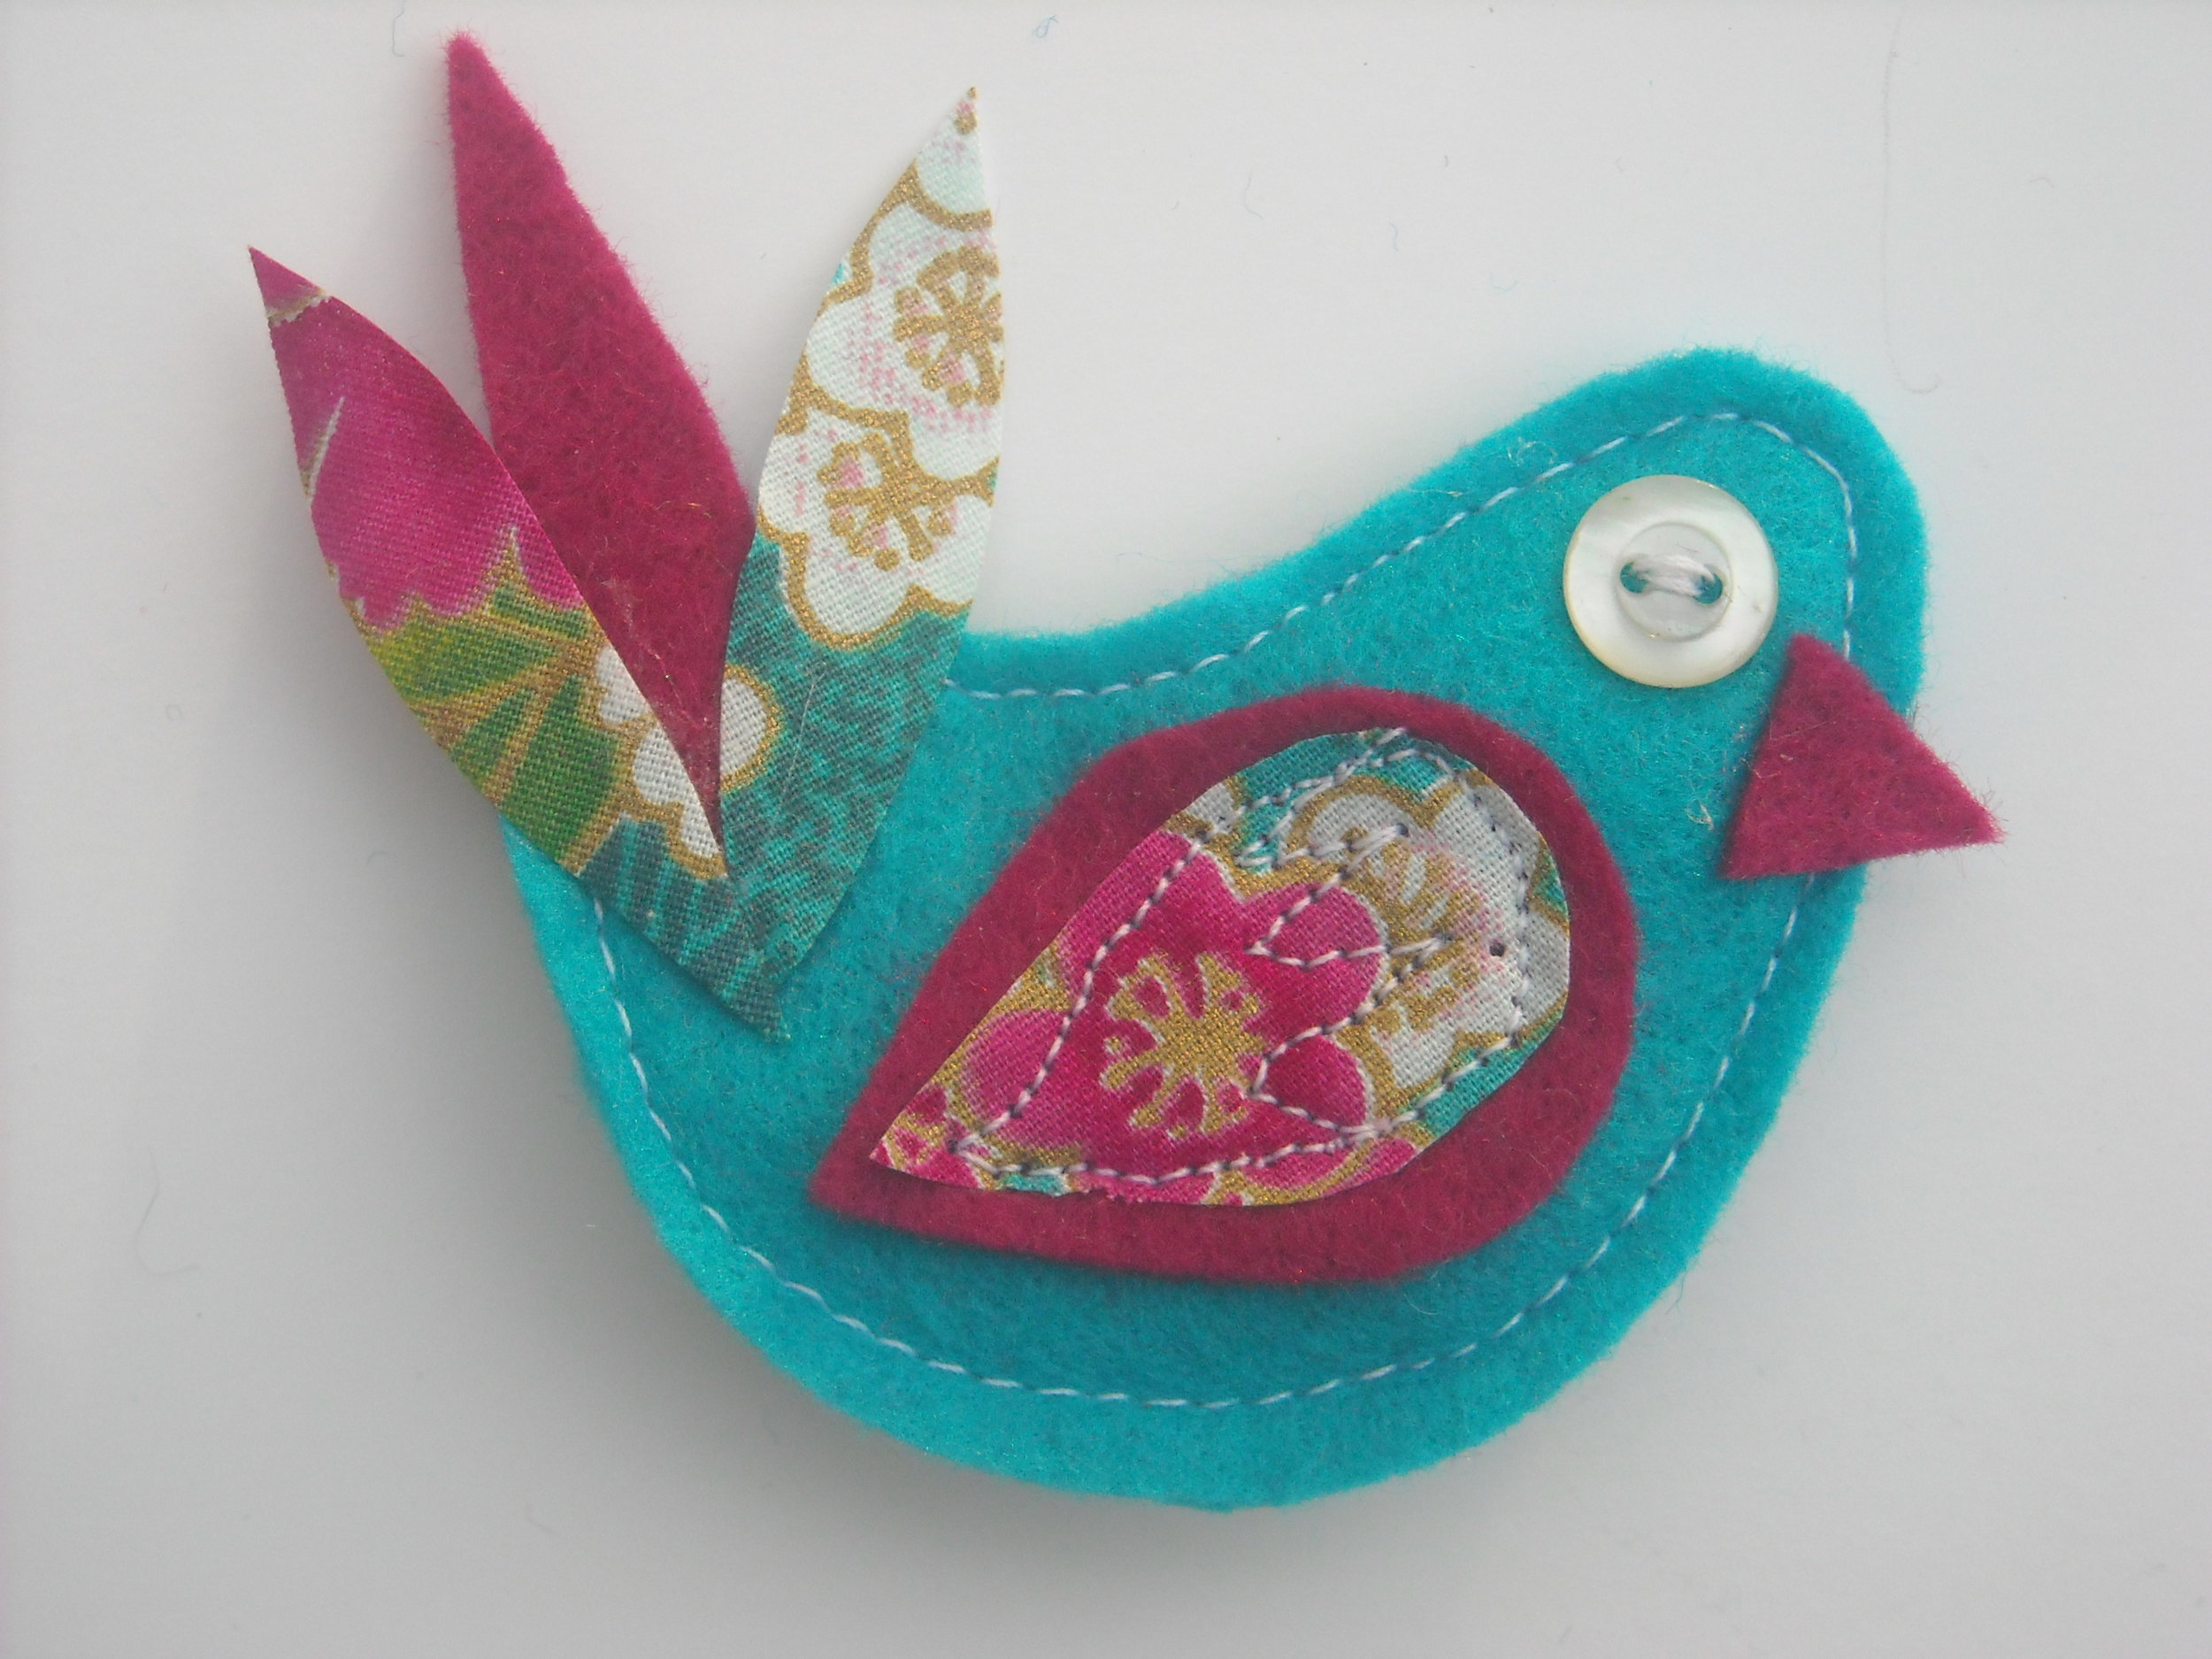 Copy of craft class  Up-cycled Uplifters, Felt Brooches or Mosaic Madness and more by Rachel Shilston - Inspiring Creativity